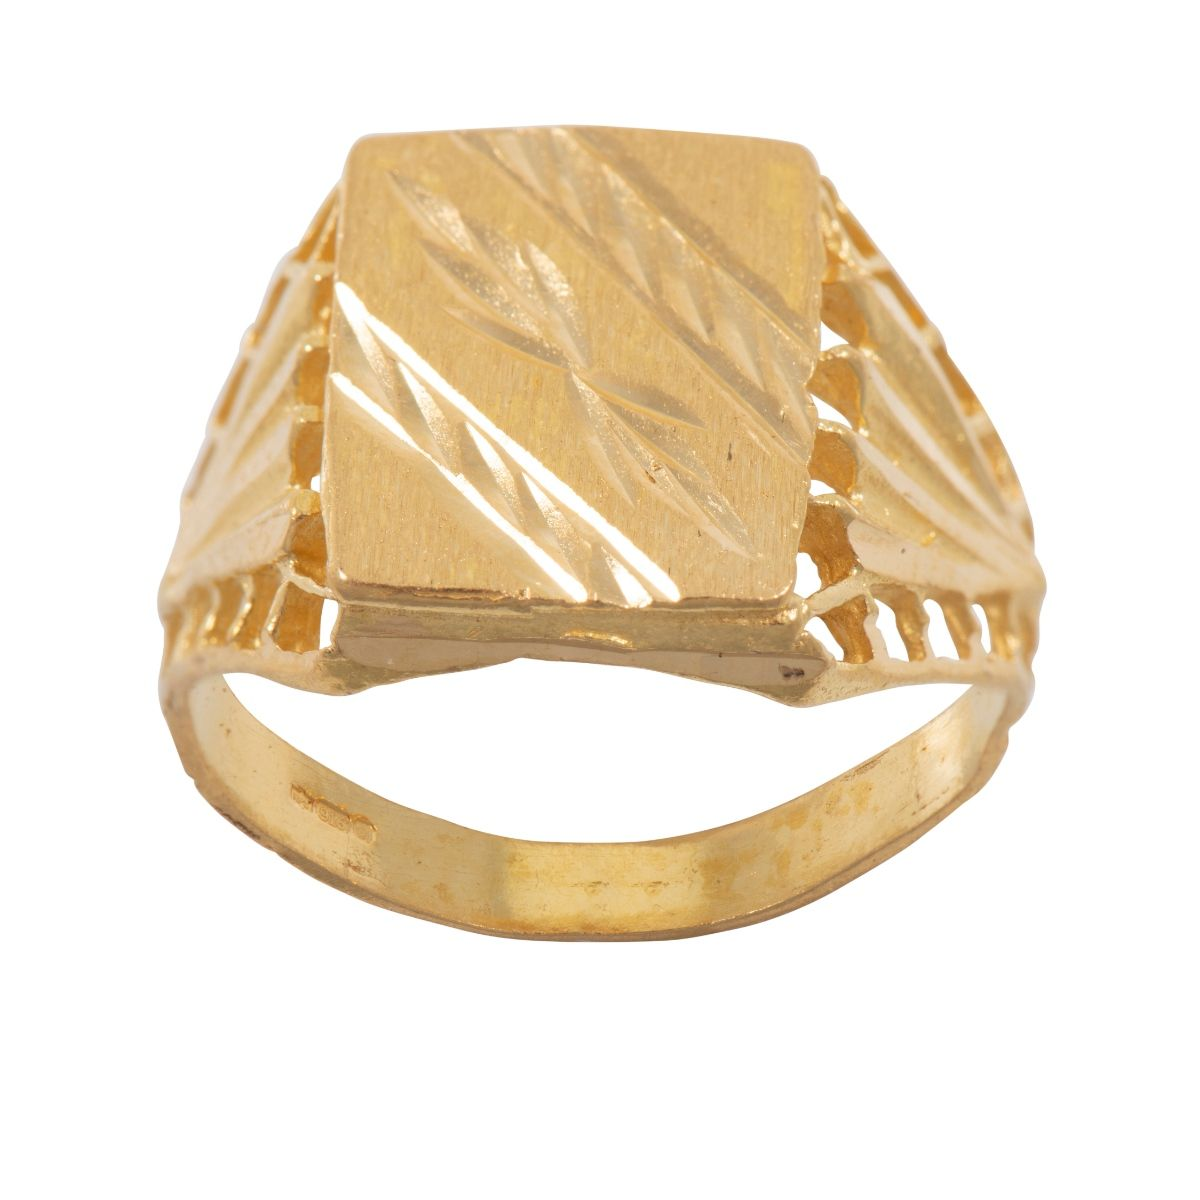 22ct Yellow Gold Patterned Signet Ring Mens Size R #8M8NR